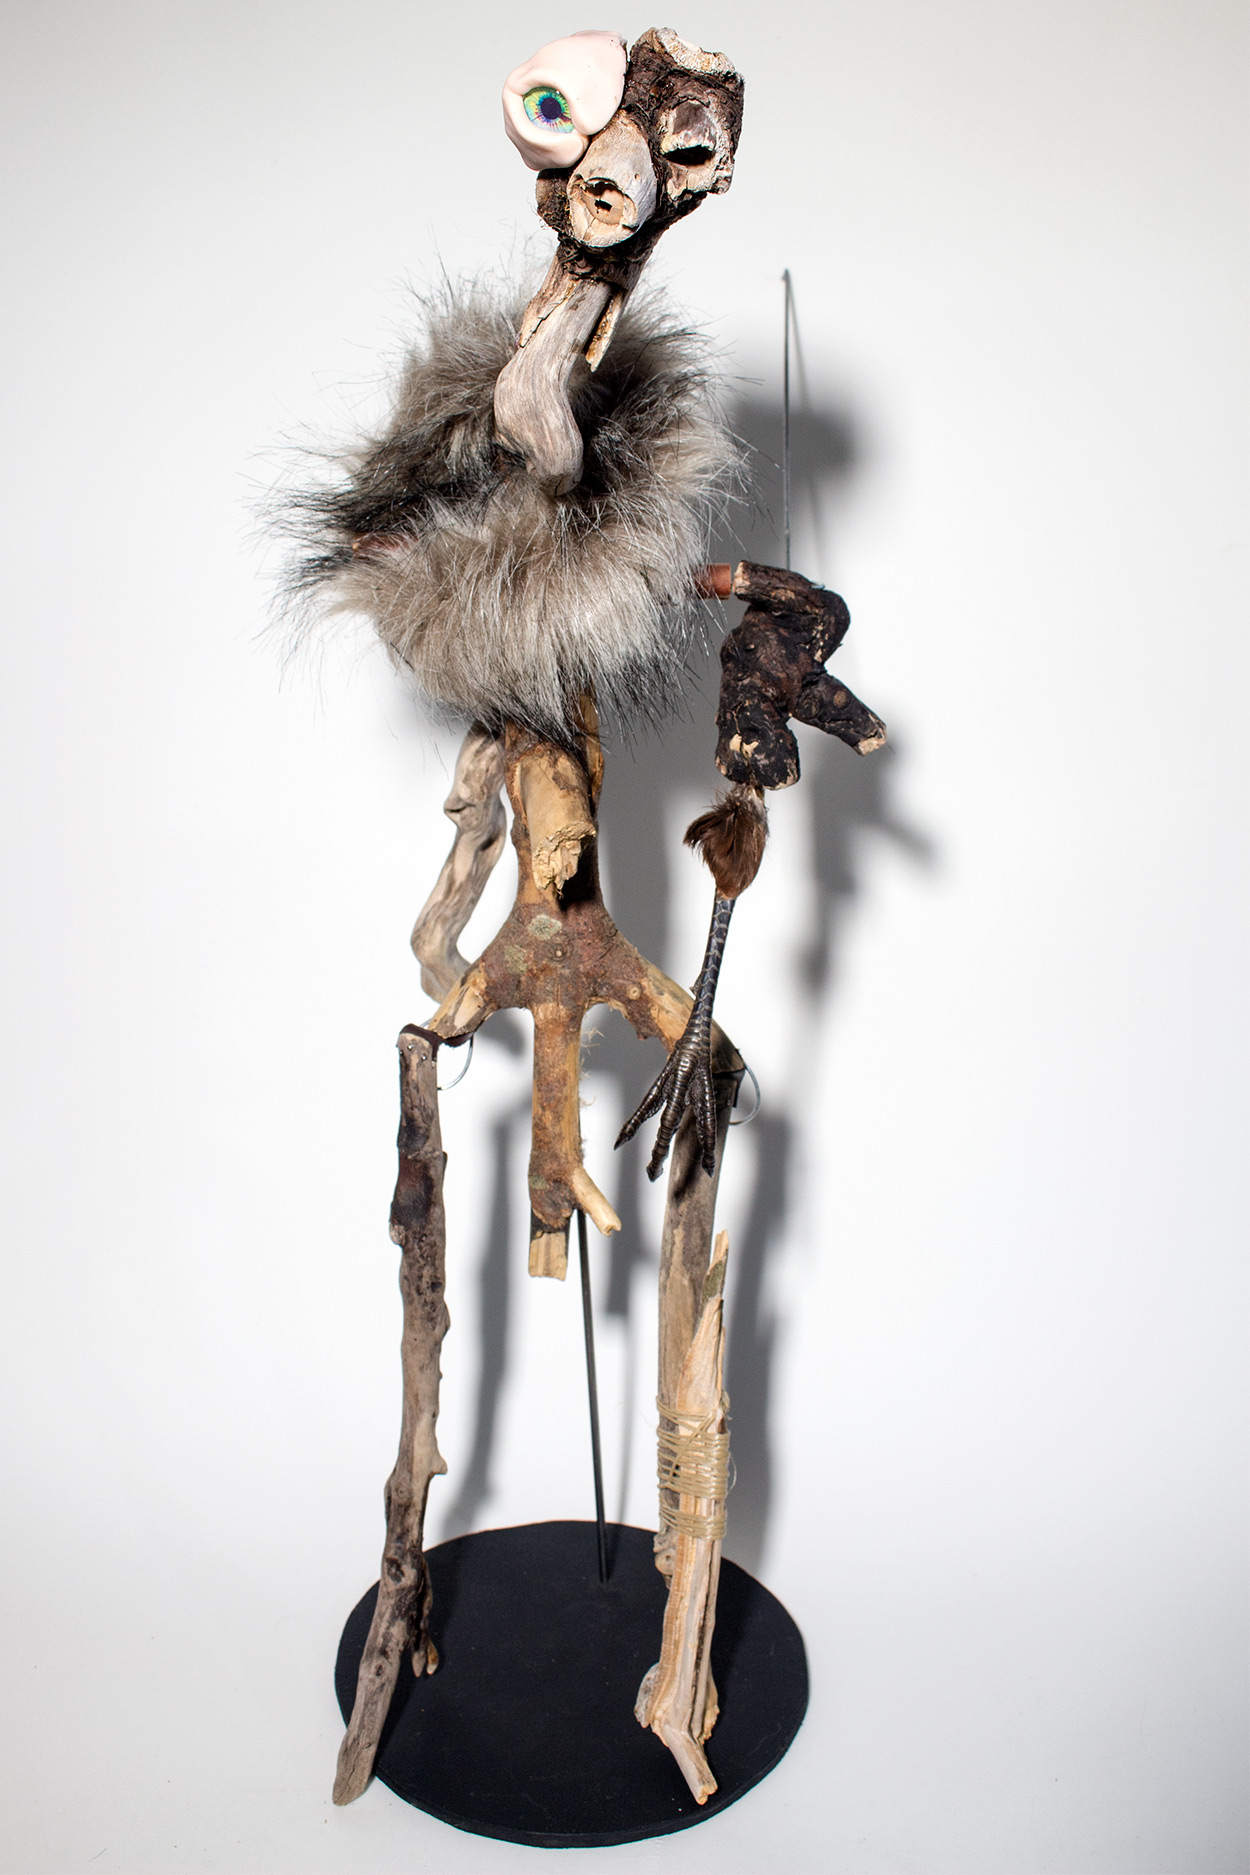 A creepy and uncanny puppet made from driftwood